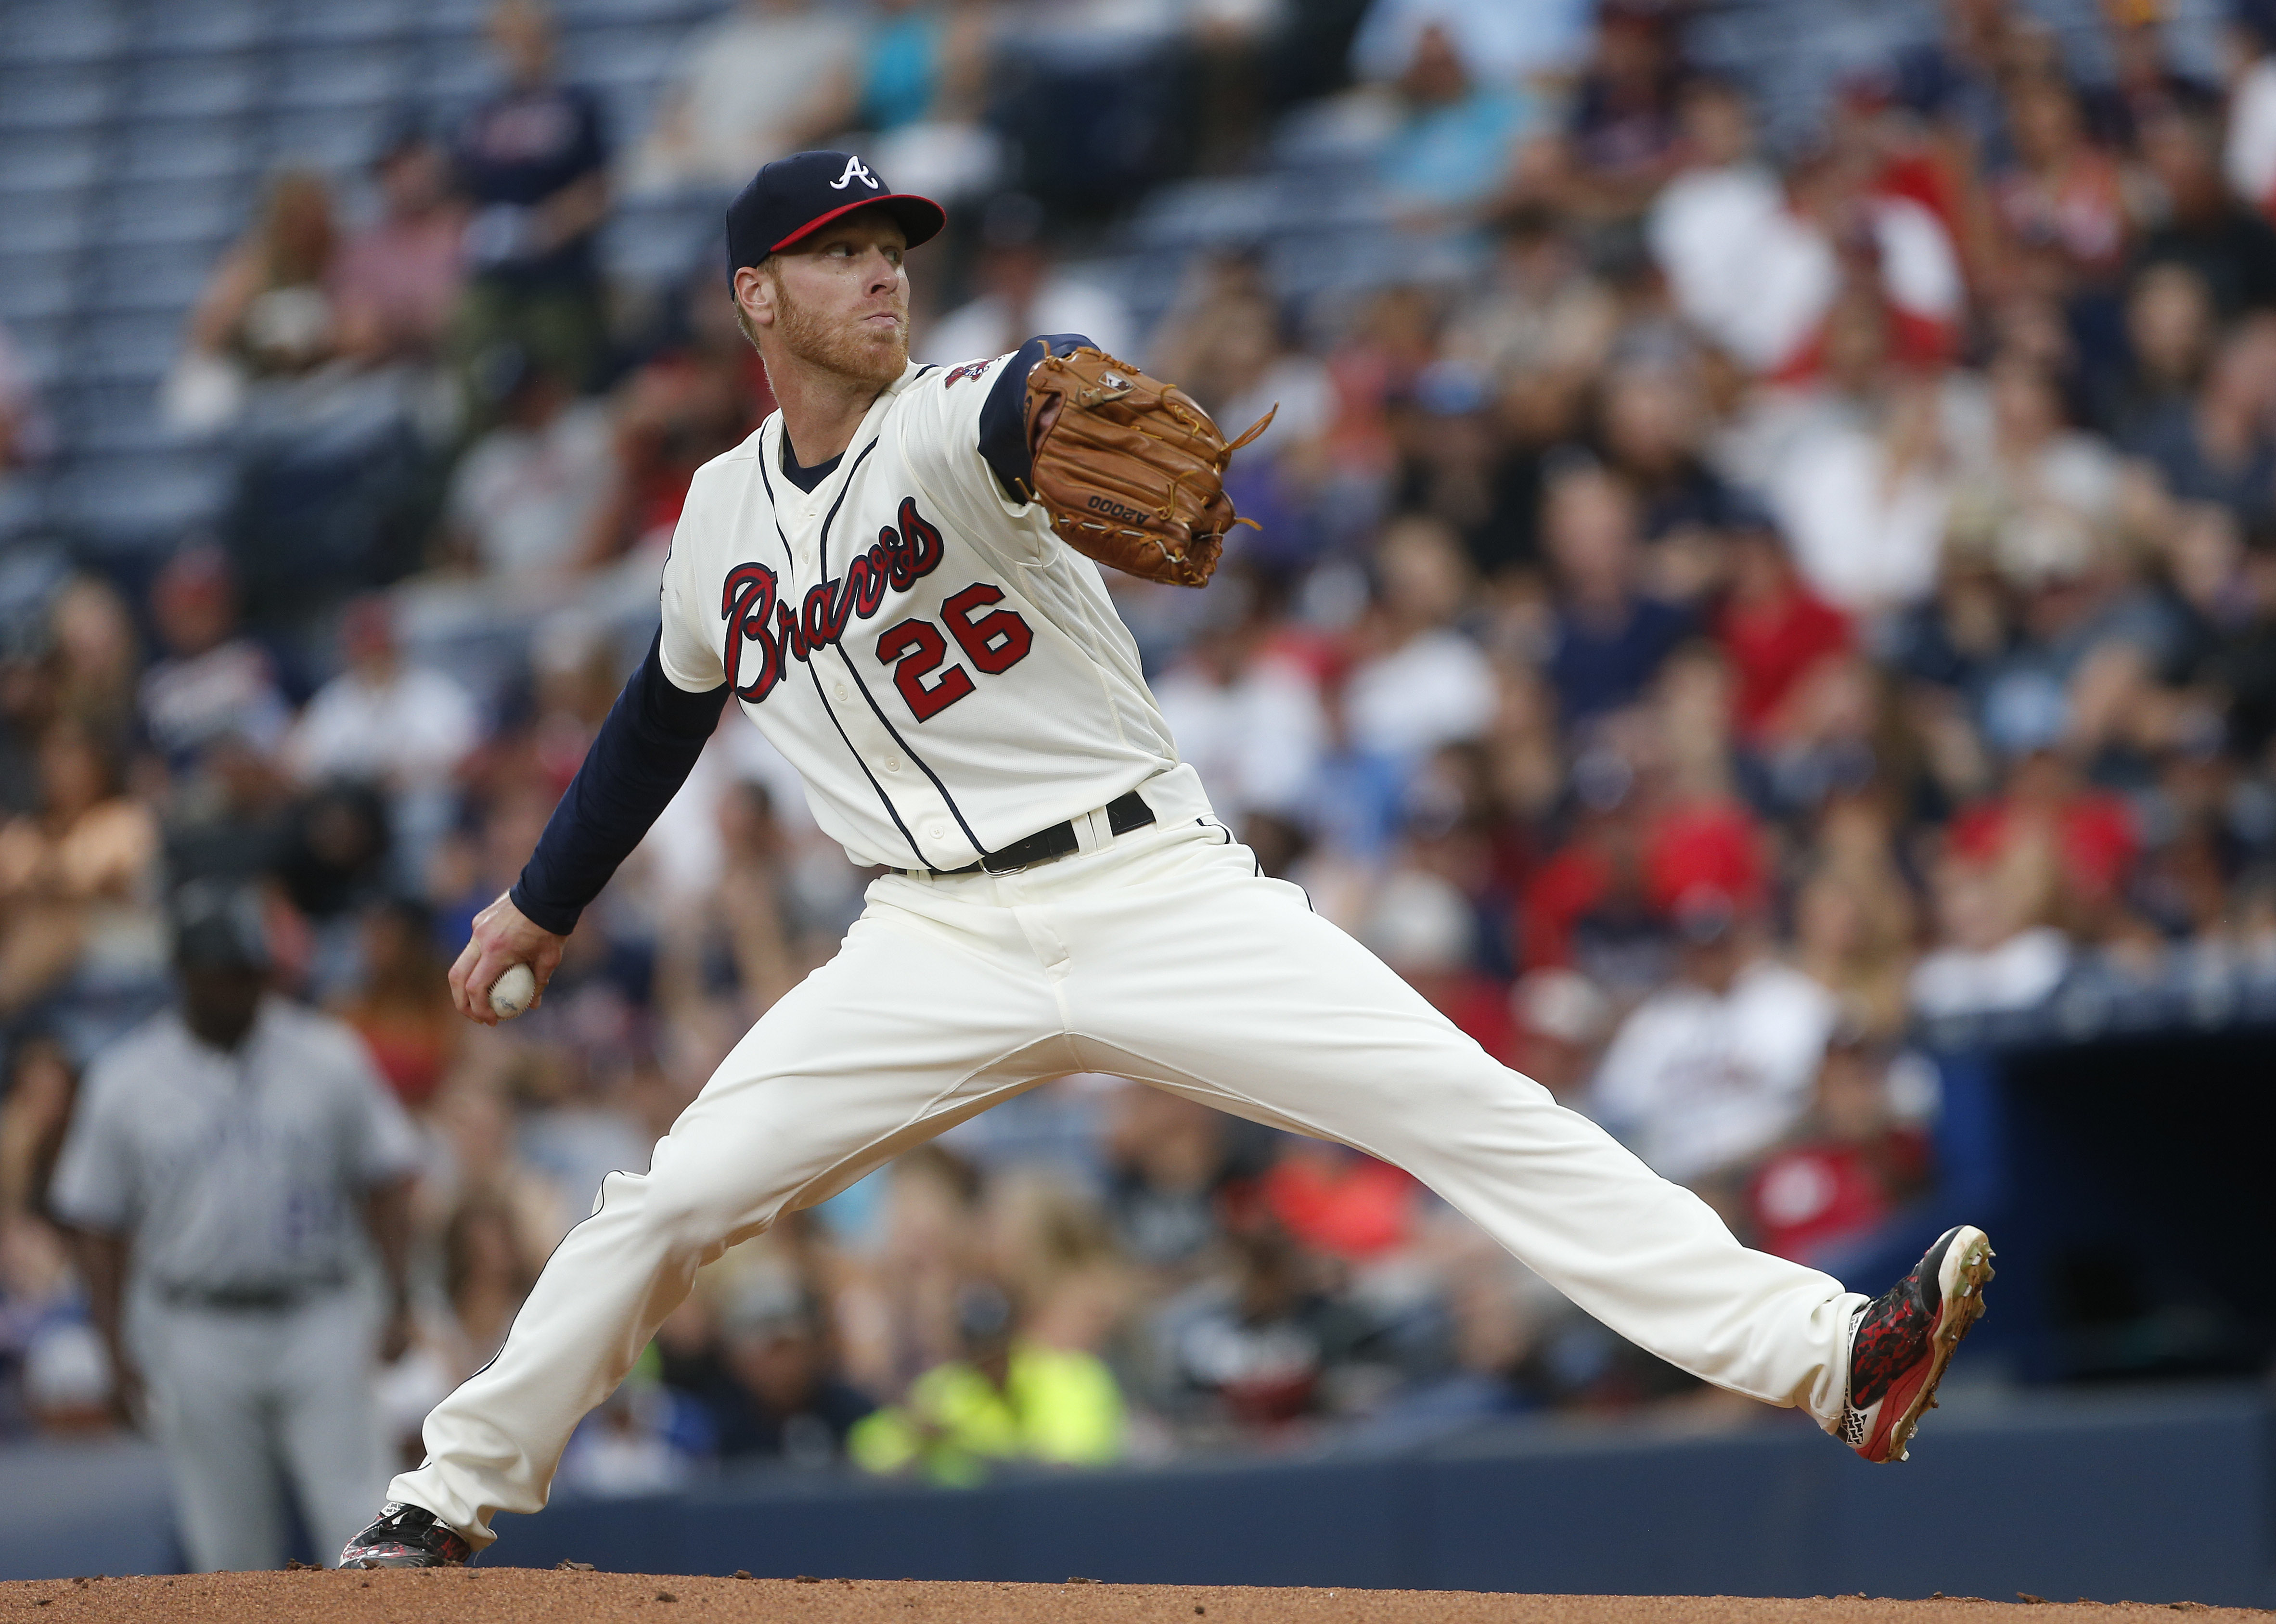 Atlanta Braves starting pitcher Mike Foltynewicz works in the first inning of a baseball game against the Colorado Rockies on Saturday, July 16, 2016, in Atlanta. (AP Photo/John Bazemore)